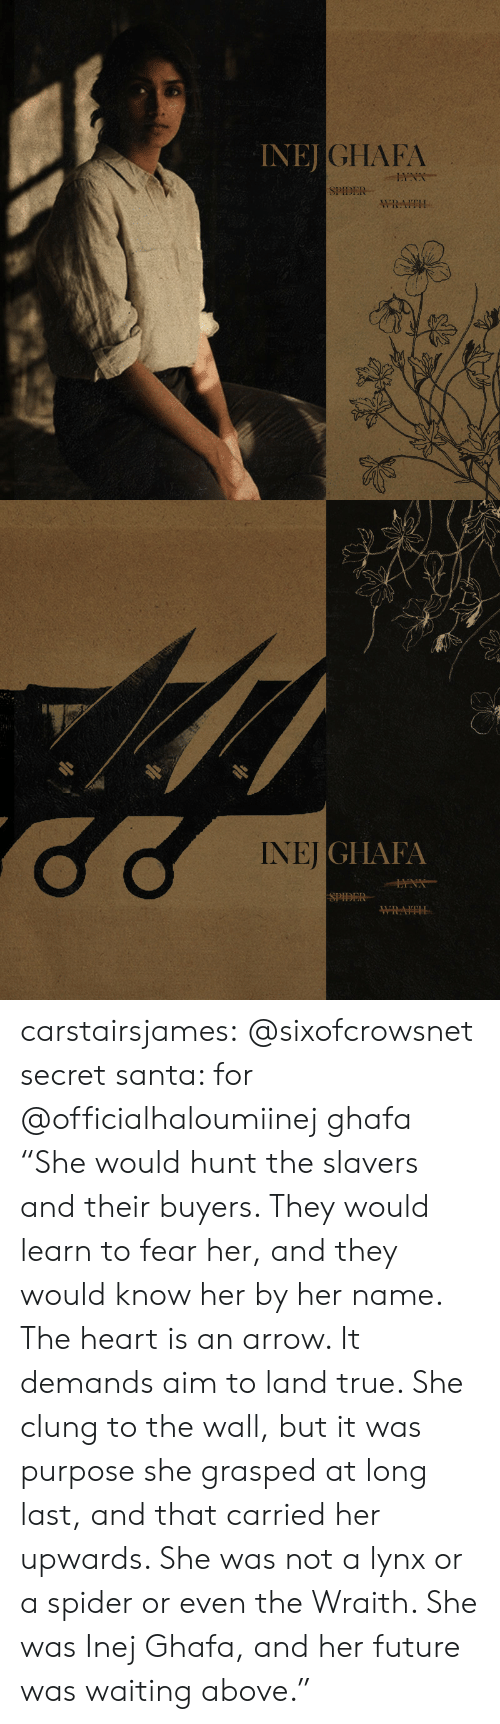 """Arrow: INEJ  JGHAFA  SPIDER  WRAITH   NEİGI IAIA  SPIDER carstairsjames:   @sixofcrowsnet secret santa: for @officialhaloumiinej ghafa   """"She would hunt the slavers and their buyers. They would learn to fear her, and they would know her by her name. The heart is an arrow. It demands aim to land true. She clung to the wall, but it was purpose she grasped at long last, and that carried her upwards. She was not a lynx or a spider or even the Wraith. She was Inej Ghafa, and her future was waiting above."""""""